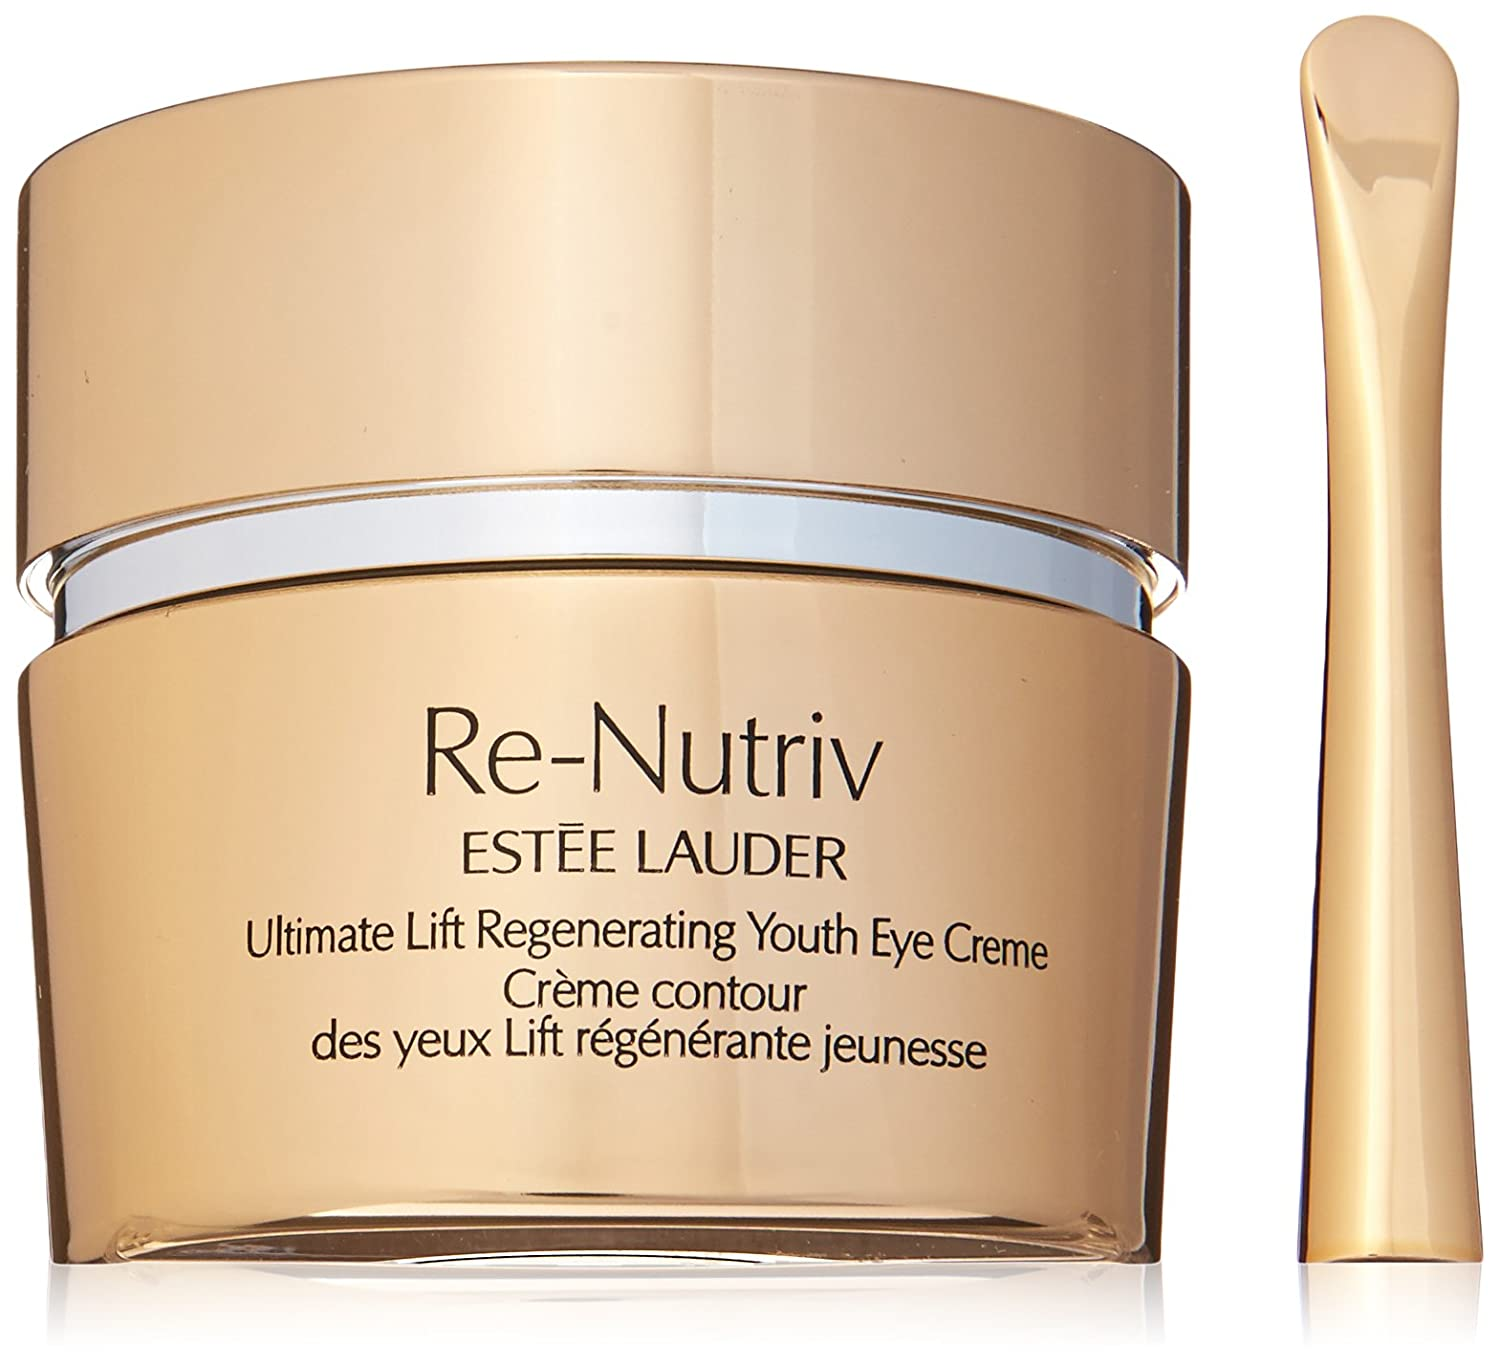 Estee Lauder Re-Nutriv Ultimate Lift Regenerating Youth Eye Creme, 0.5 Ounce